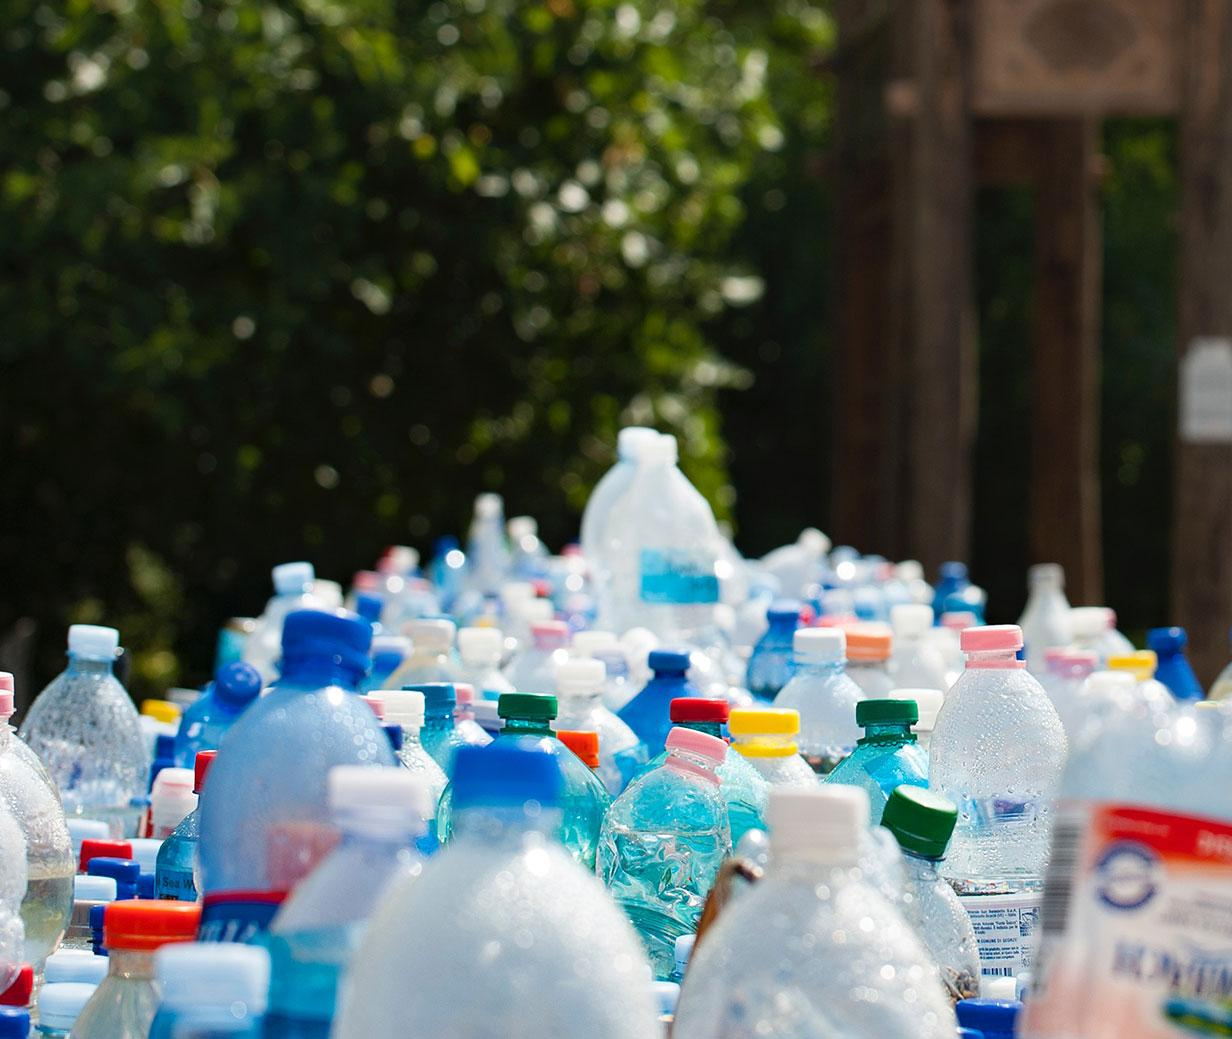 Why recycling won't save us from overconsumption